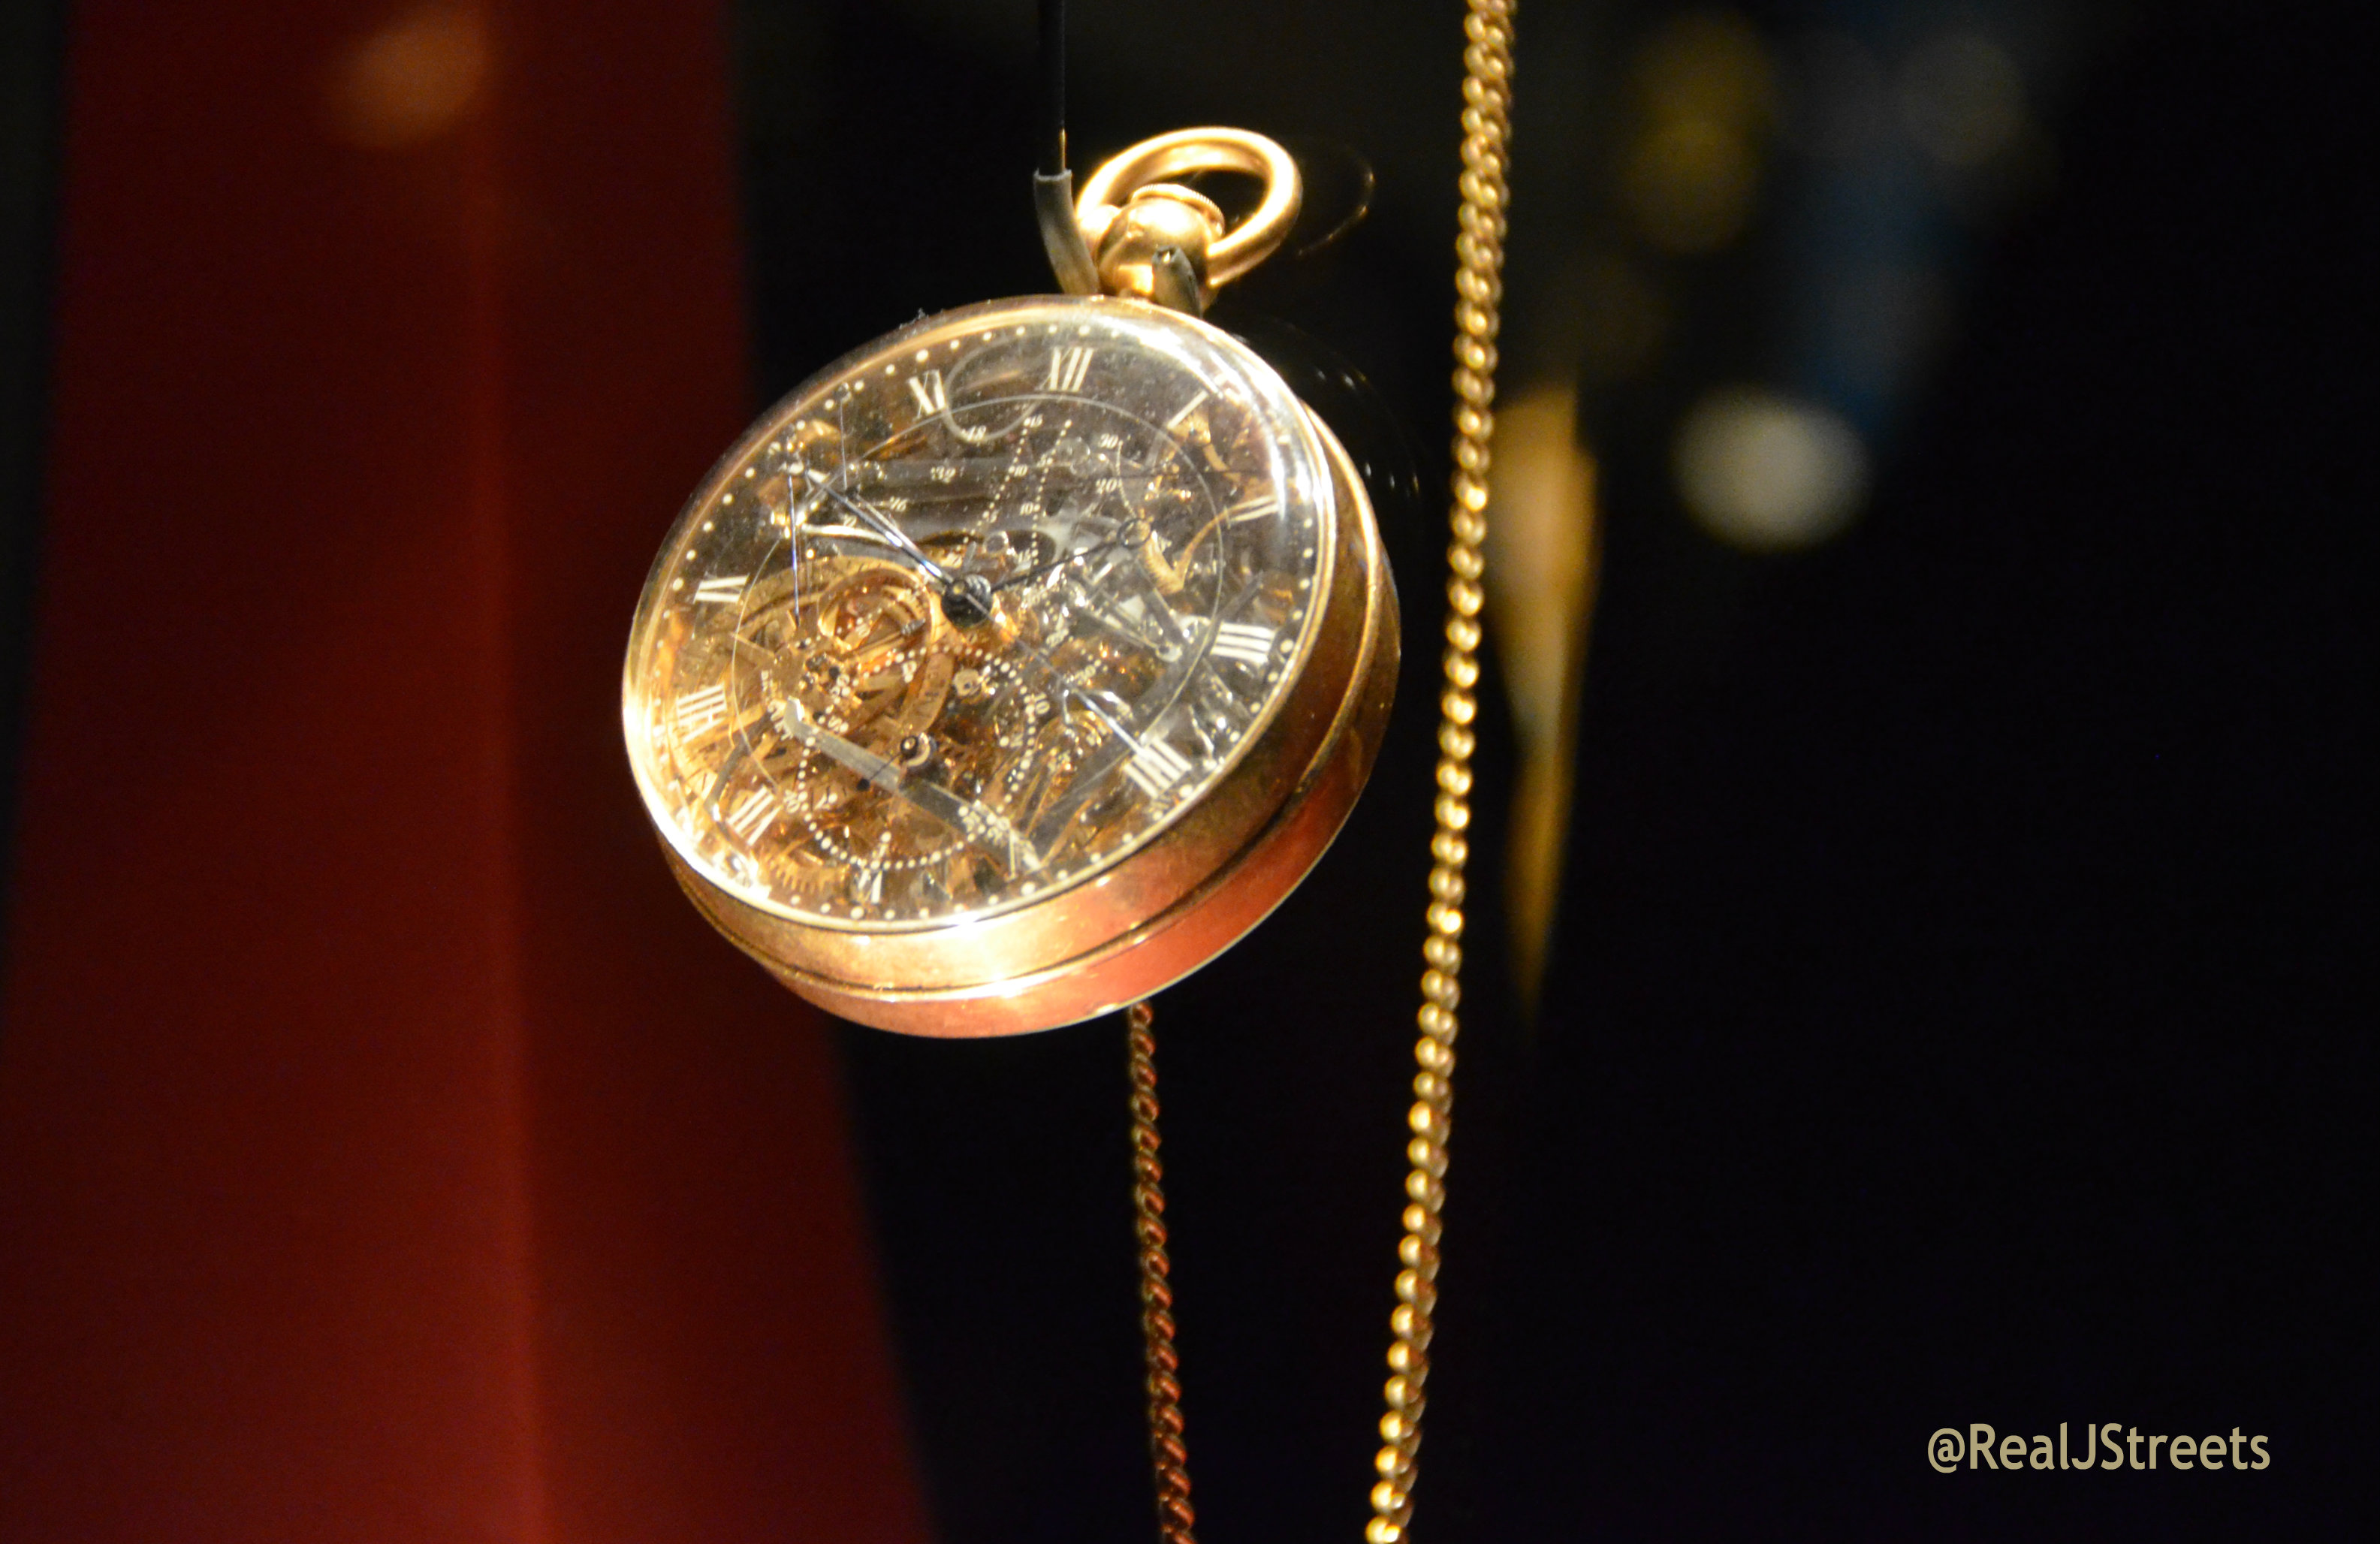 Breguet watch for Marie Antoinette